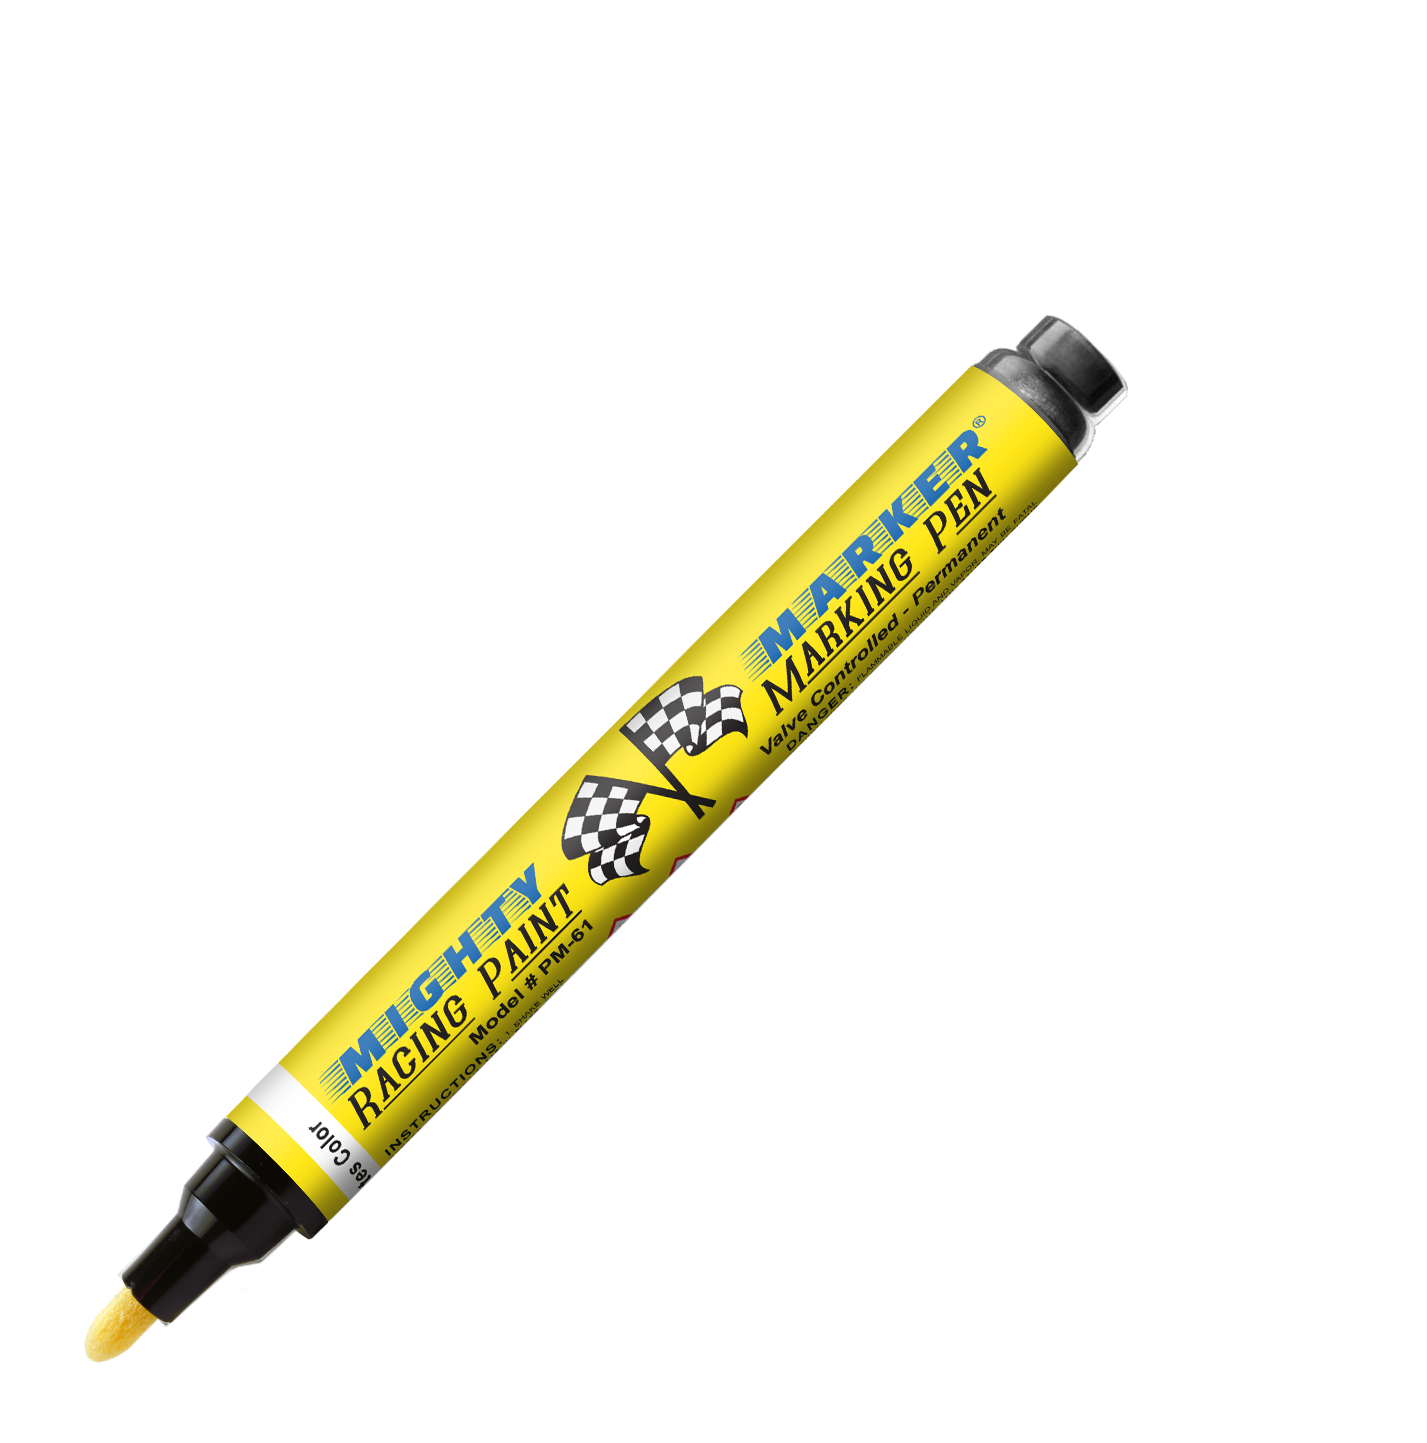 pm61 racing paint marker